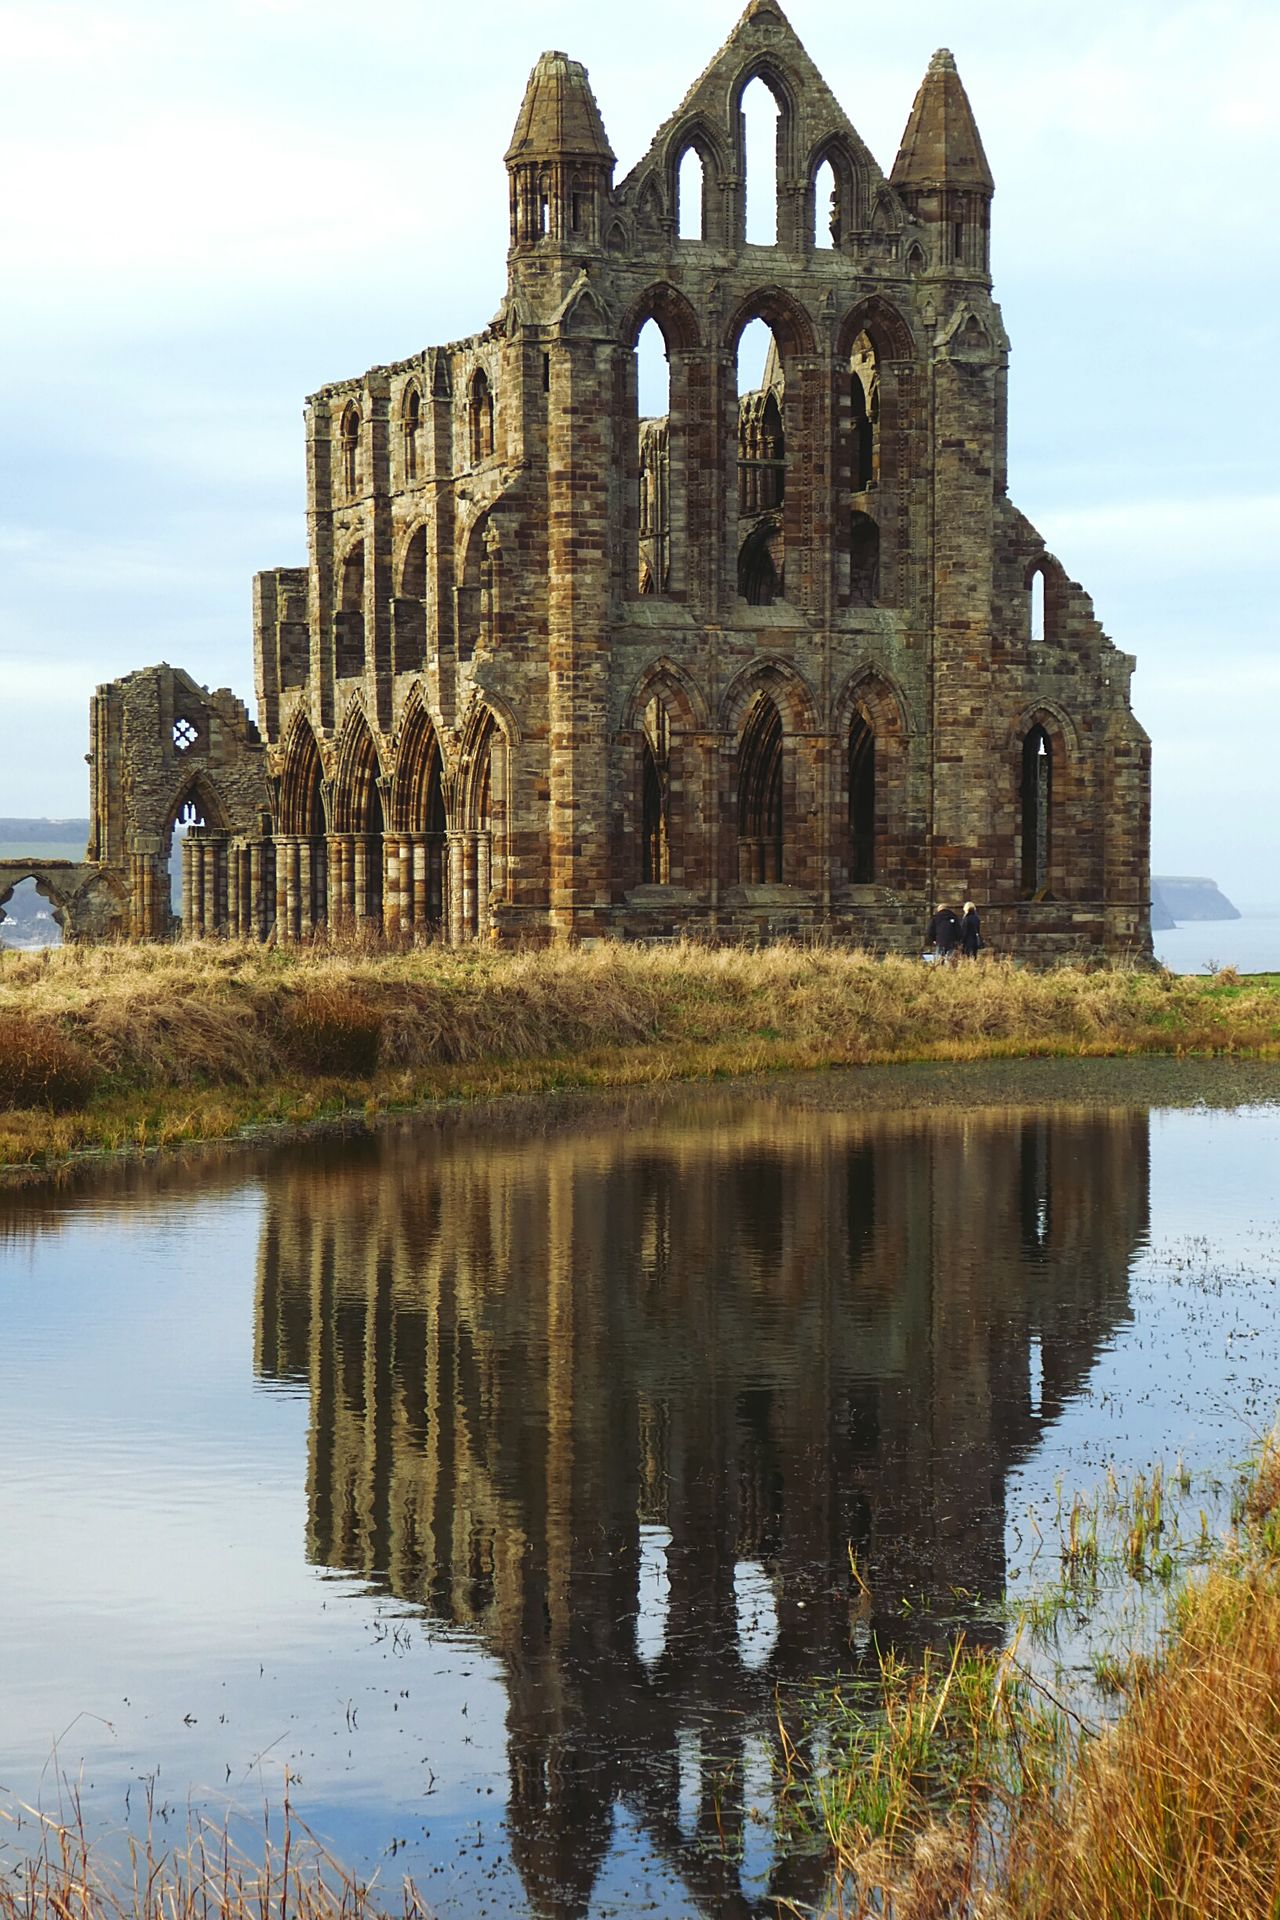 Dramatic and evocative, Whitby Abbey commands the town from its windy North Yorkshire headland. You can see the ruins from several miles distant. Up close, they are even more magnificent : the glorious stonework, eroded by the salty air is still as beautifully detailed as it would have been in the 13th century. The abbey stands stark against the Yorkshire sky and North Sea waves and one can see why it became the inspiration for Bram Stokers dracula! ... Reflection Architecture Built Structure Whitby Abbey Building Exterior Ruin Dissolution Of The Church Henry VIII Travel Destinations History Water Outdoors Sky No People Cultures Distant Sea Magnificent Ancient Architecture 657 A.d. Spooky Atmosphere